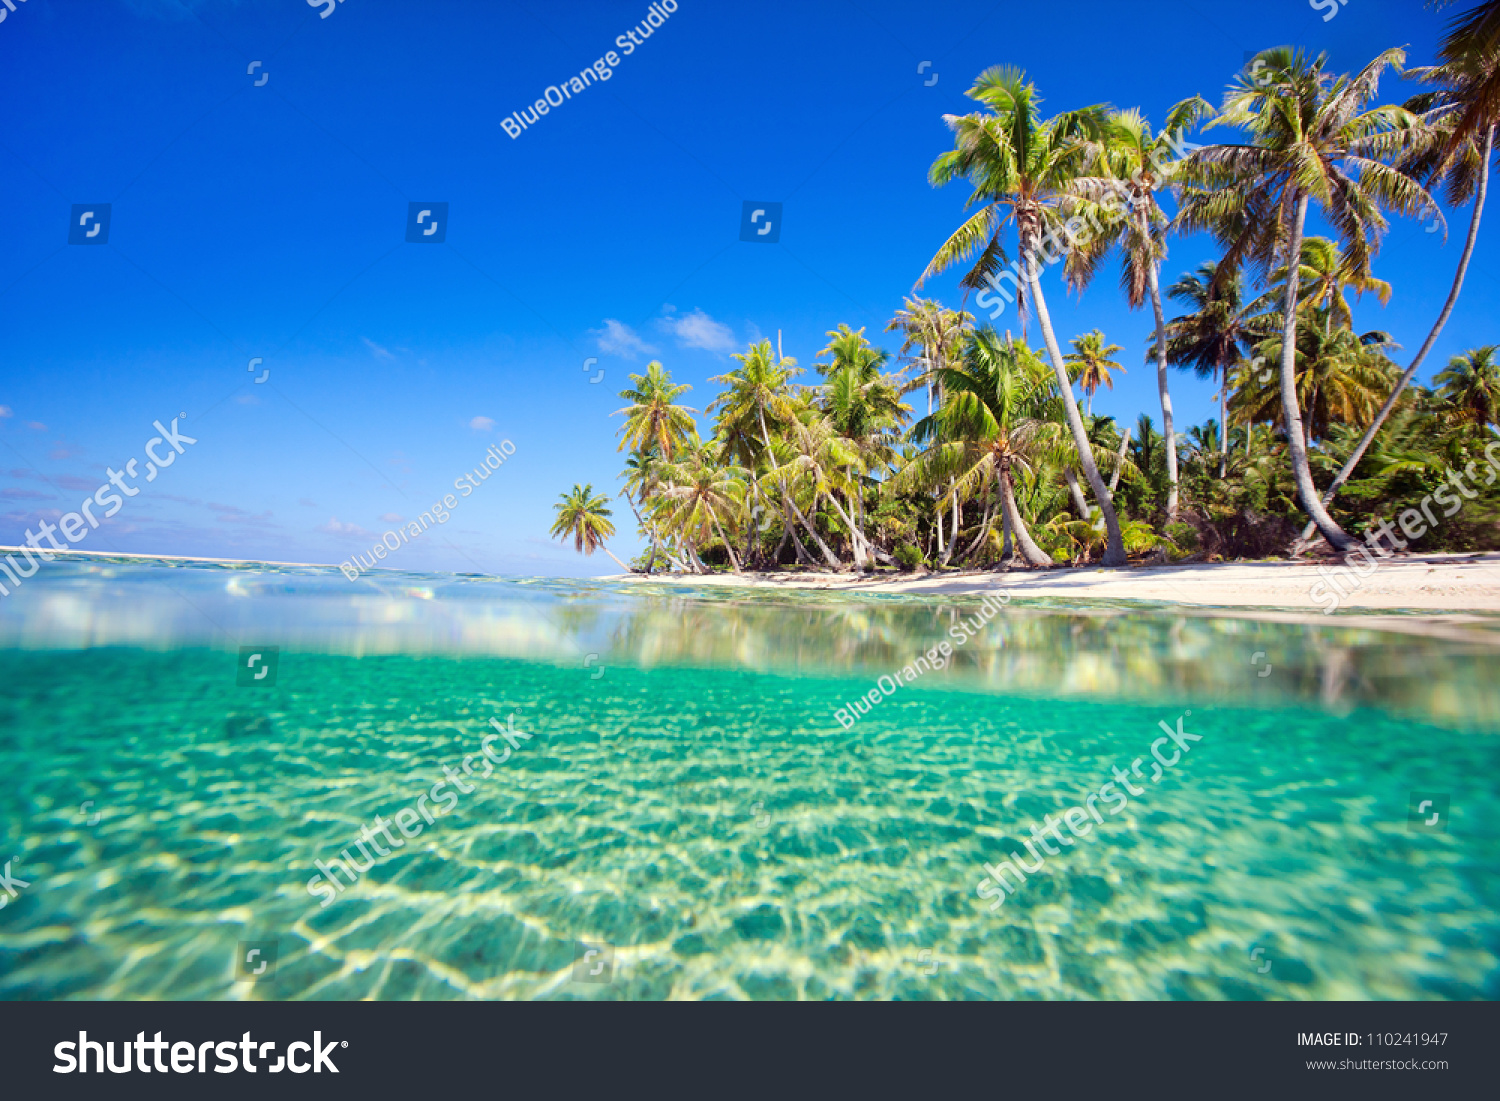 Tikehau Atoll French Polynesia  city photo : Beautiful Tropical Island tropical island beach stock photos, images ...